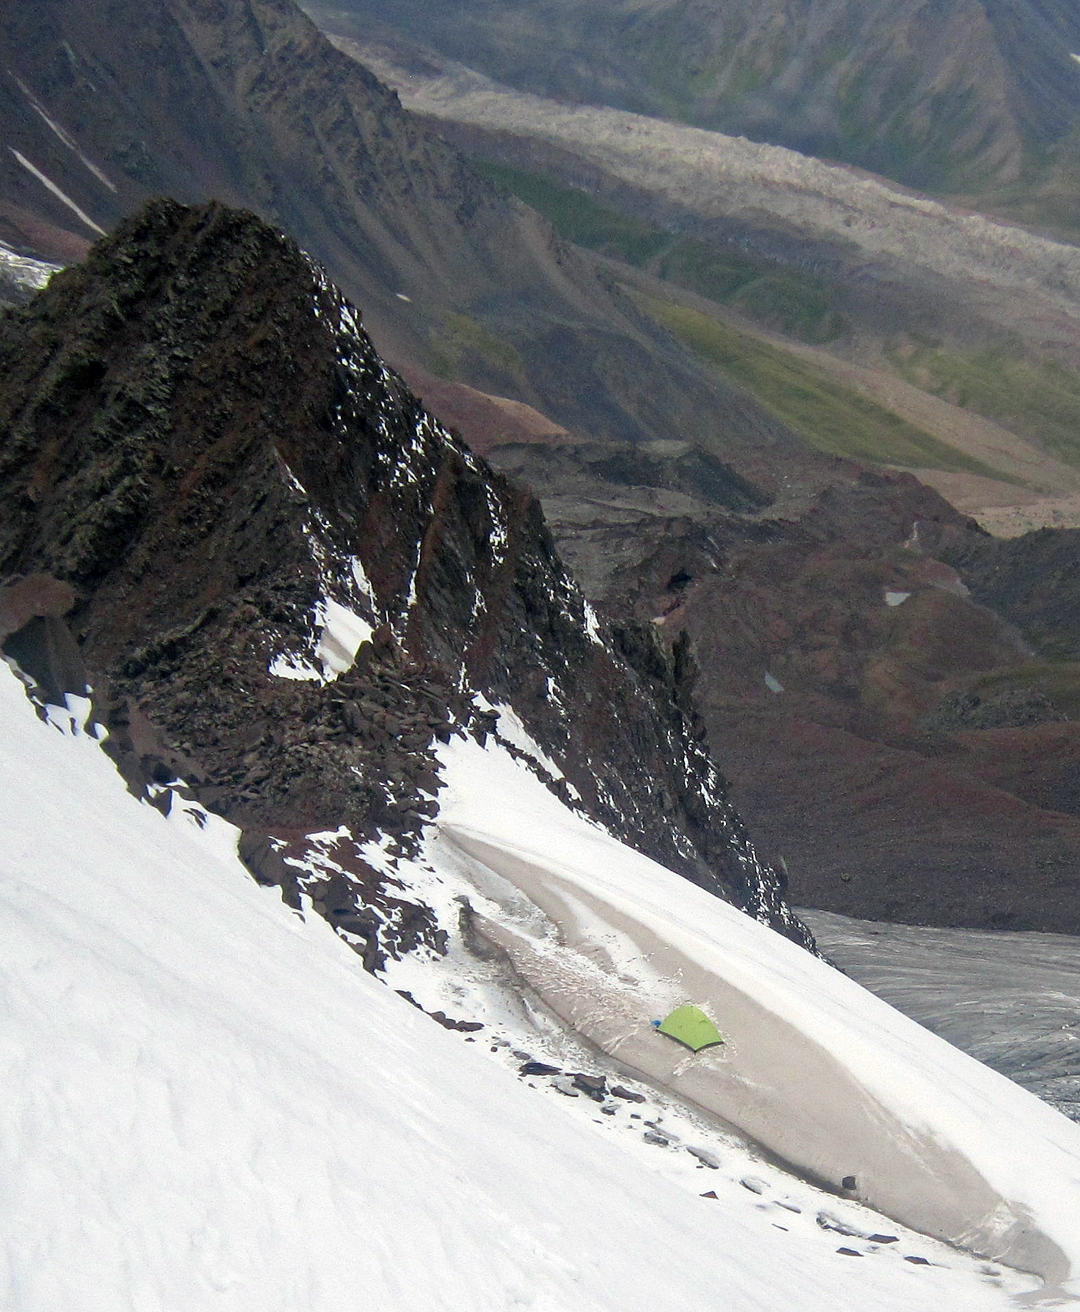 The top bivouac at 4,650m on the west ridge of Pik Kөпөлөк (Pik Butterfly), with the Kyzyl Su Glacier below.